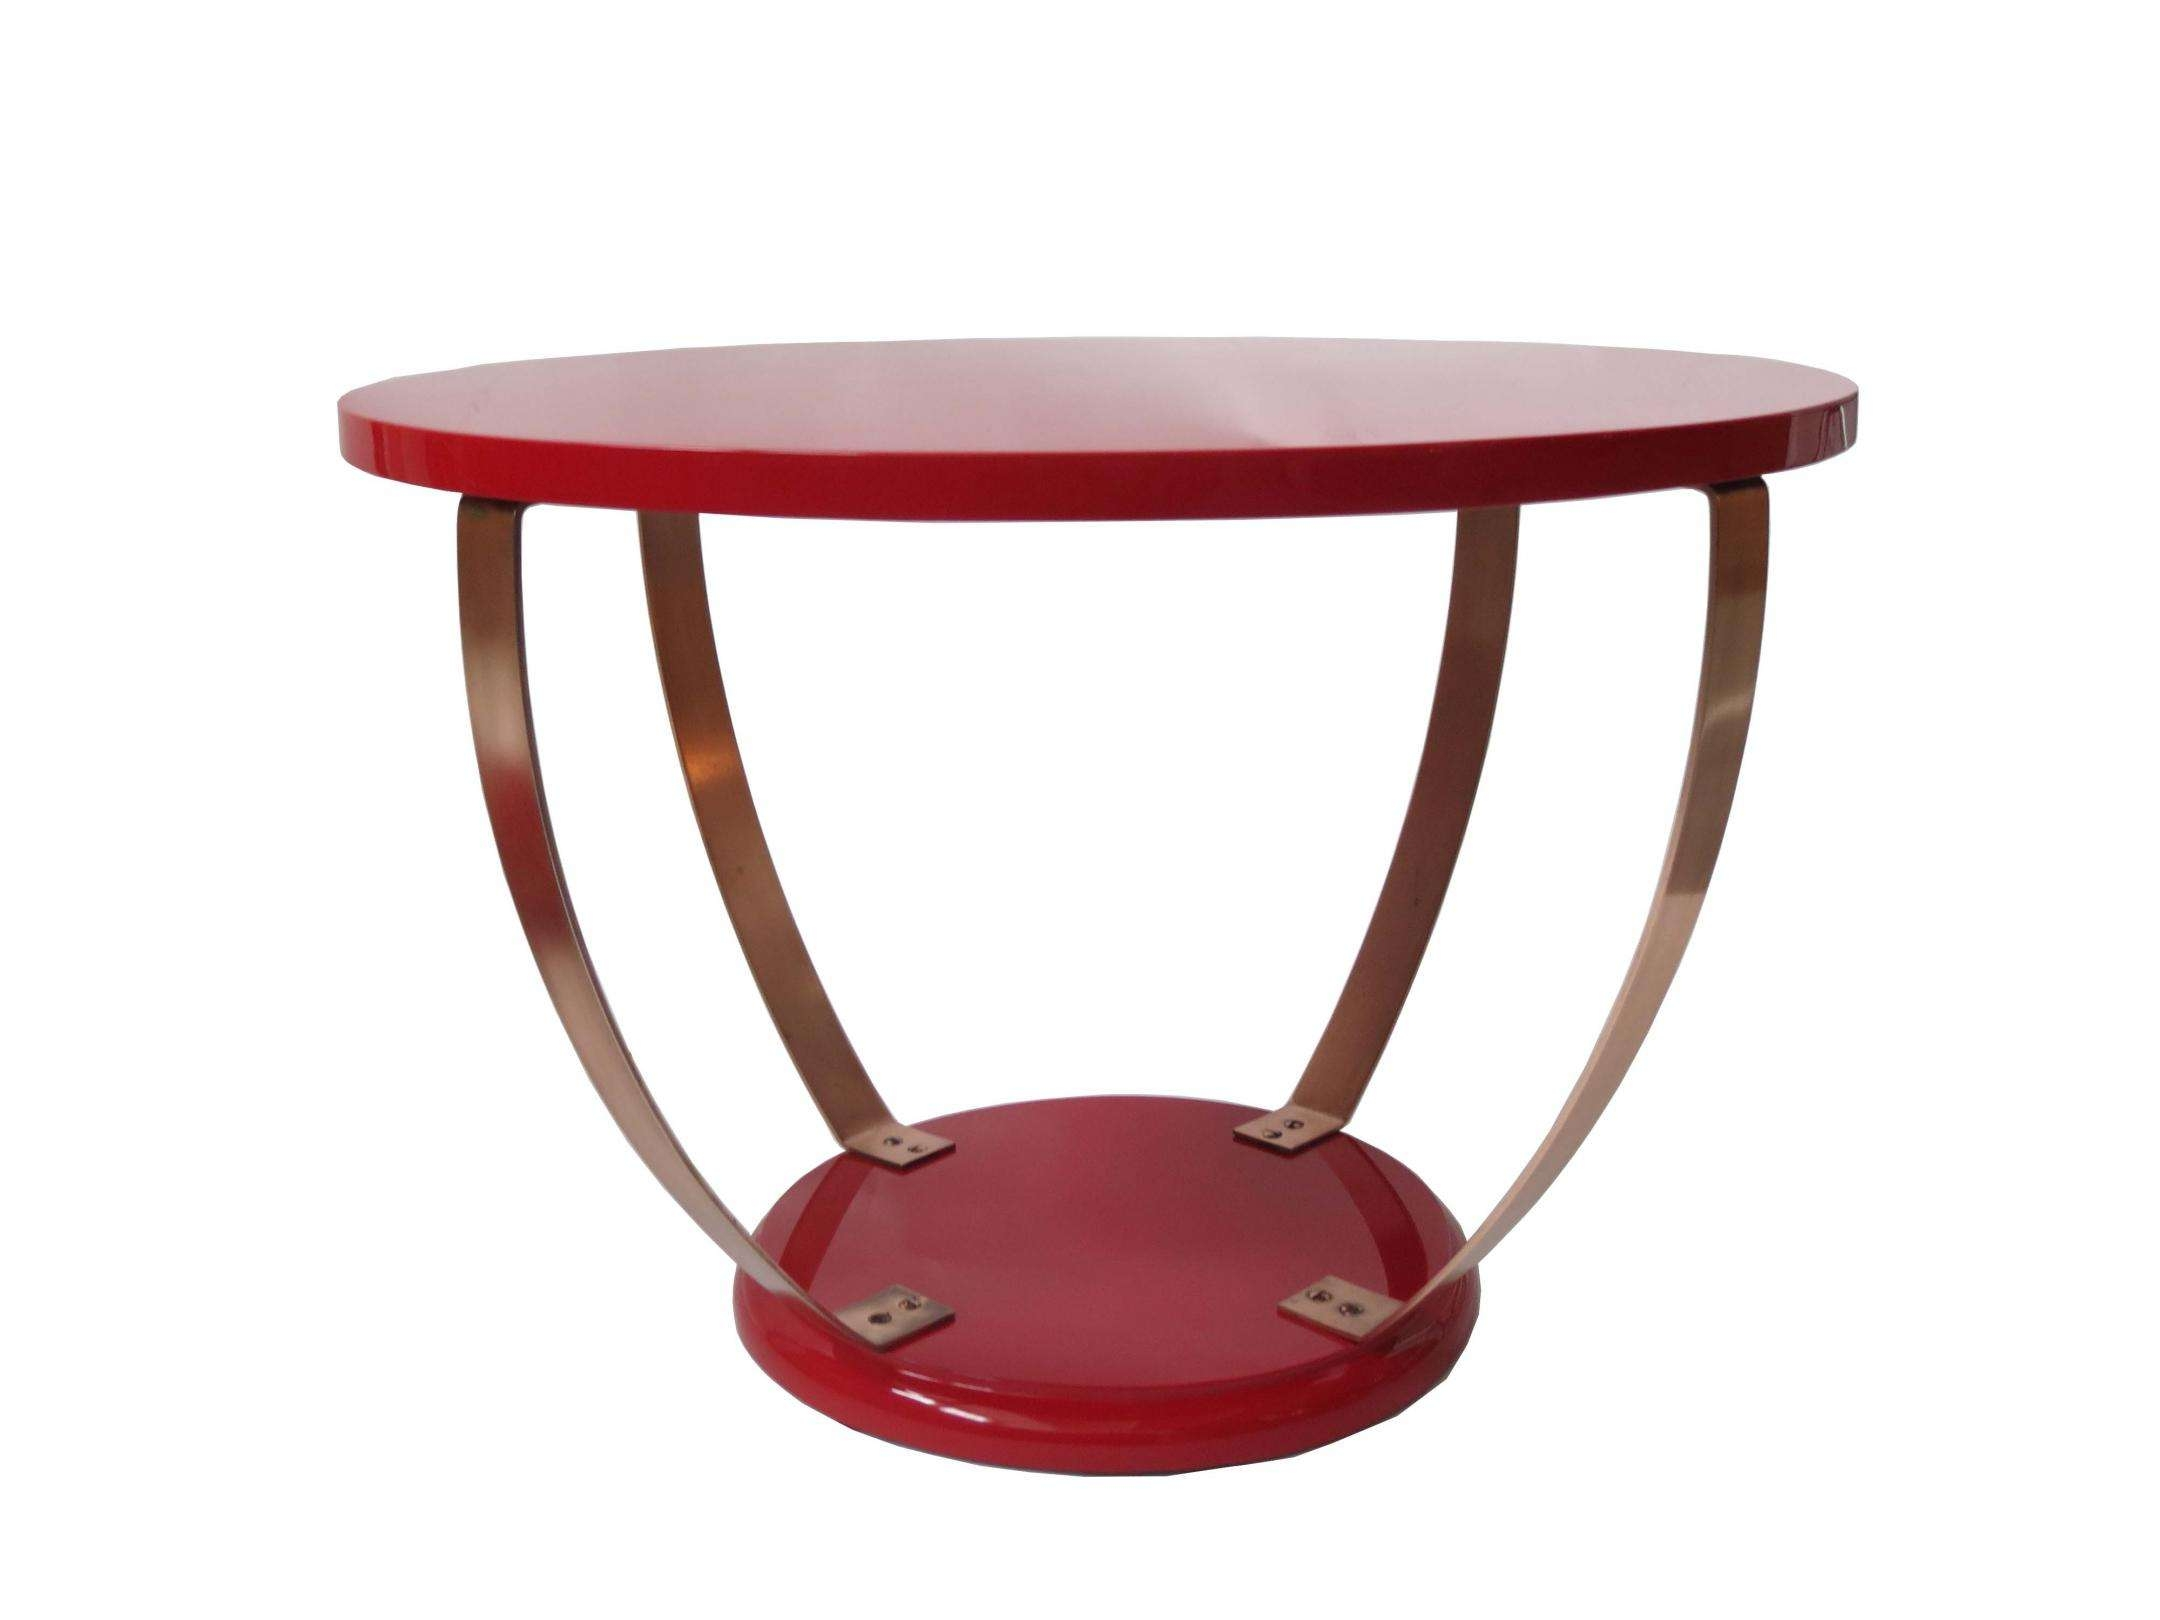 Modernism With Popular Red Gloss Coffee Tables (View 2 of 20)